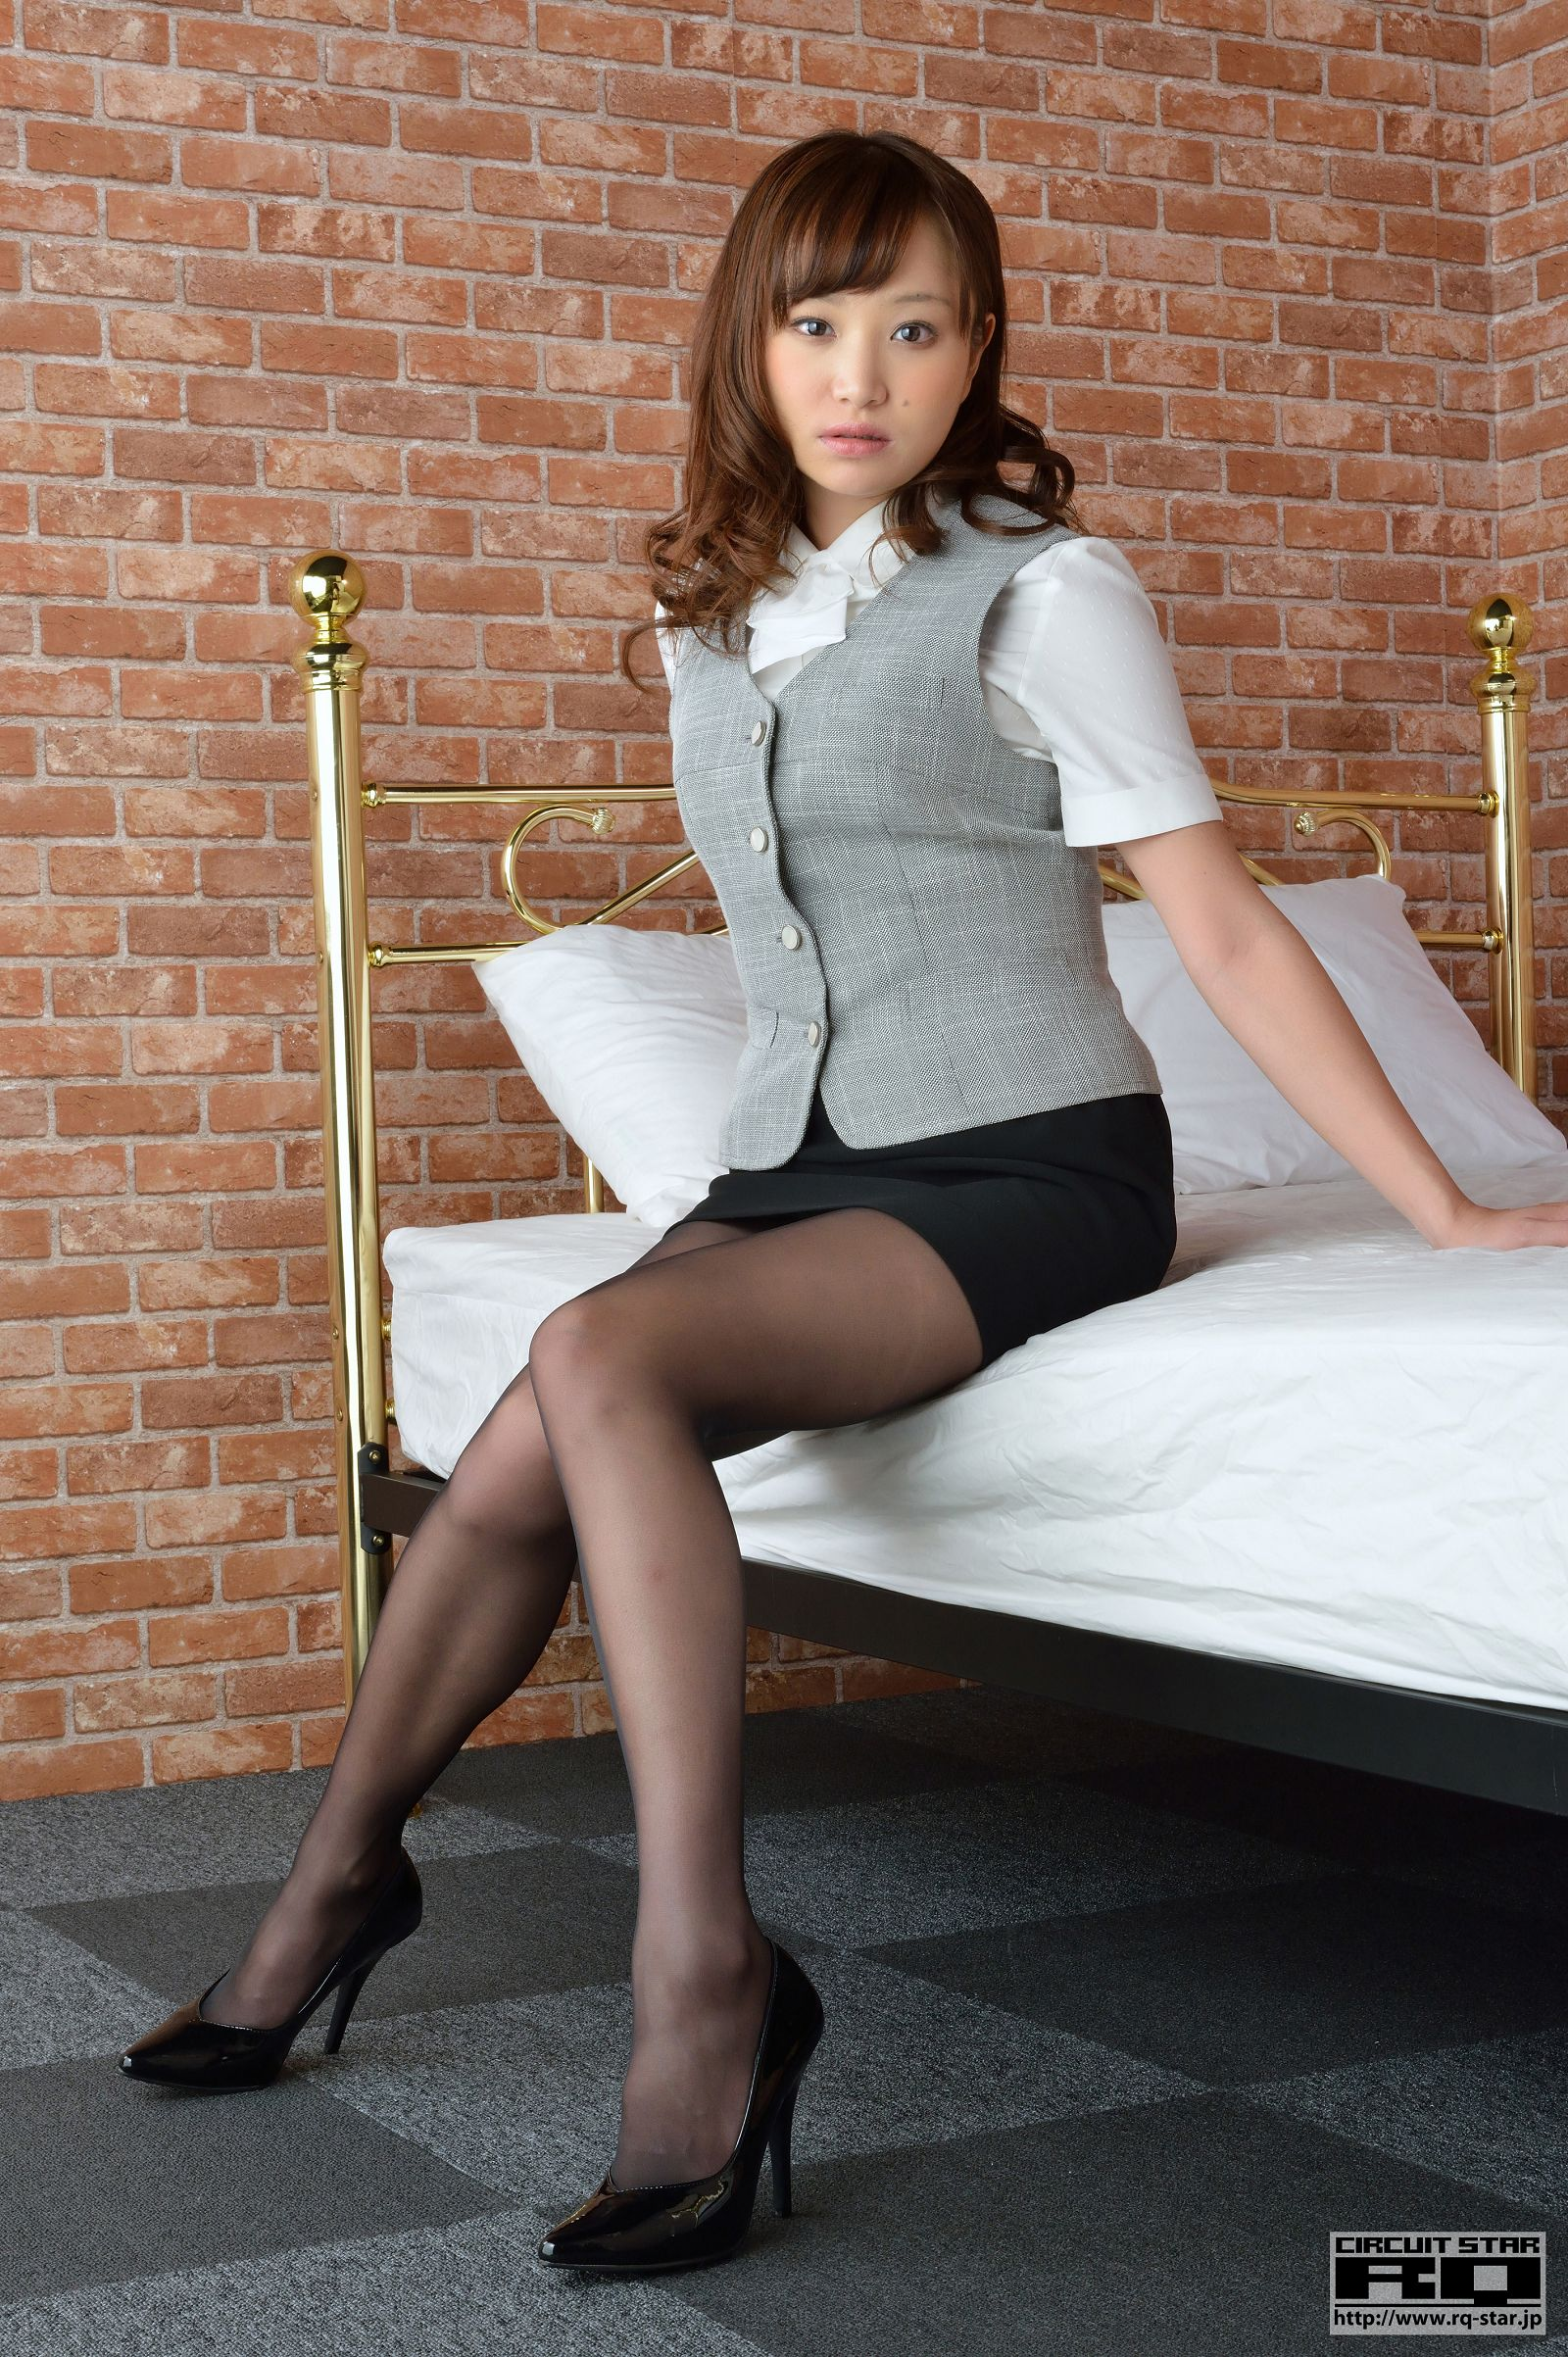 [RQ STAR美女] NO.00705 Yurika Aoi 葵ゆりか Office Lady[110P] RQ STAR 第2张